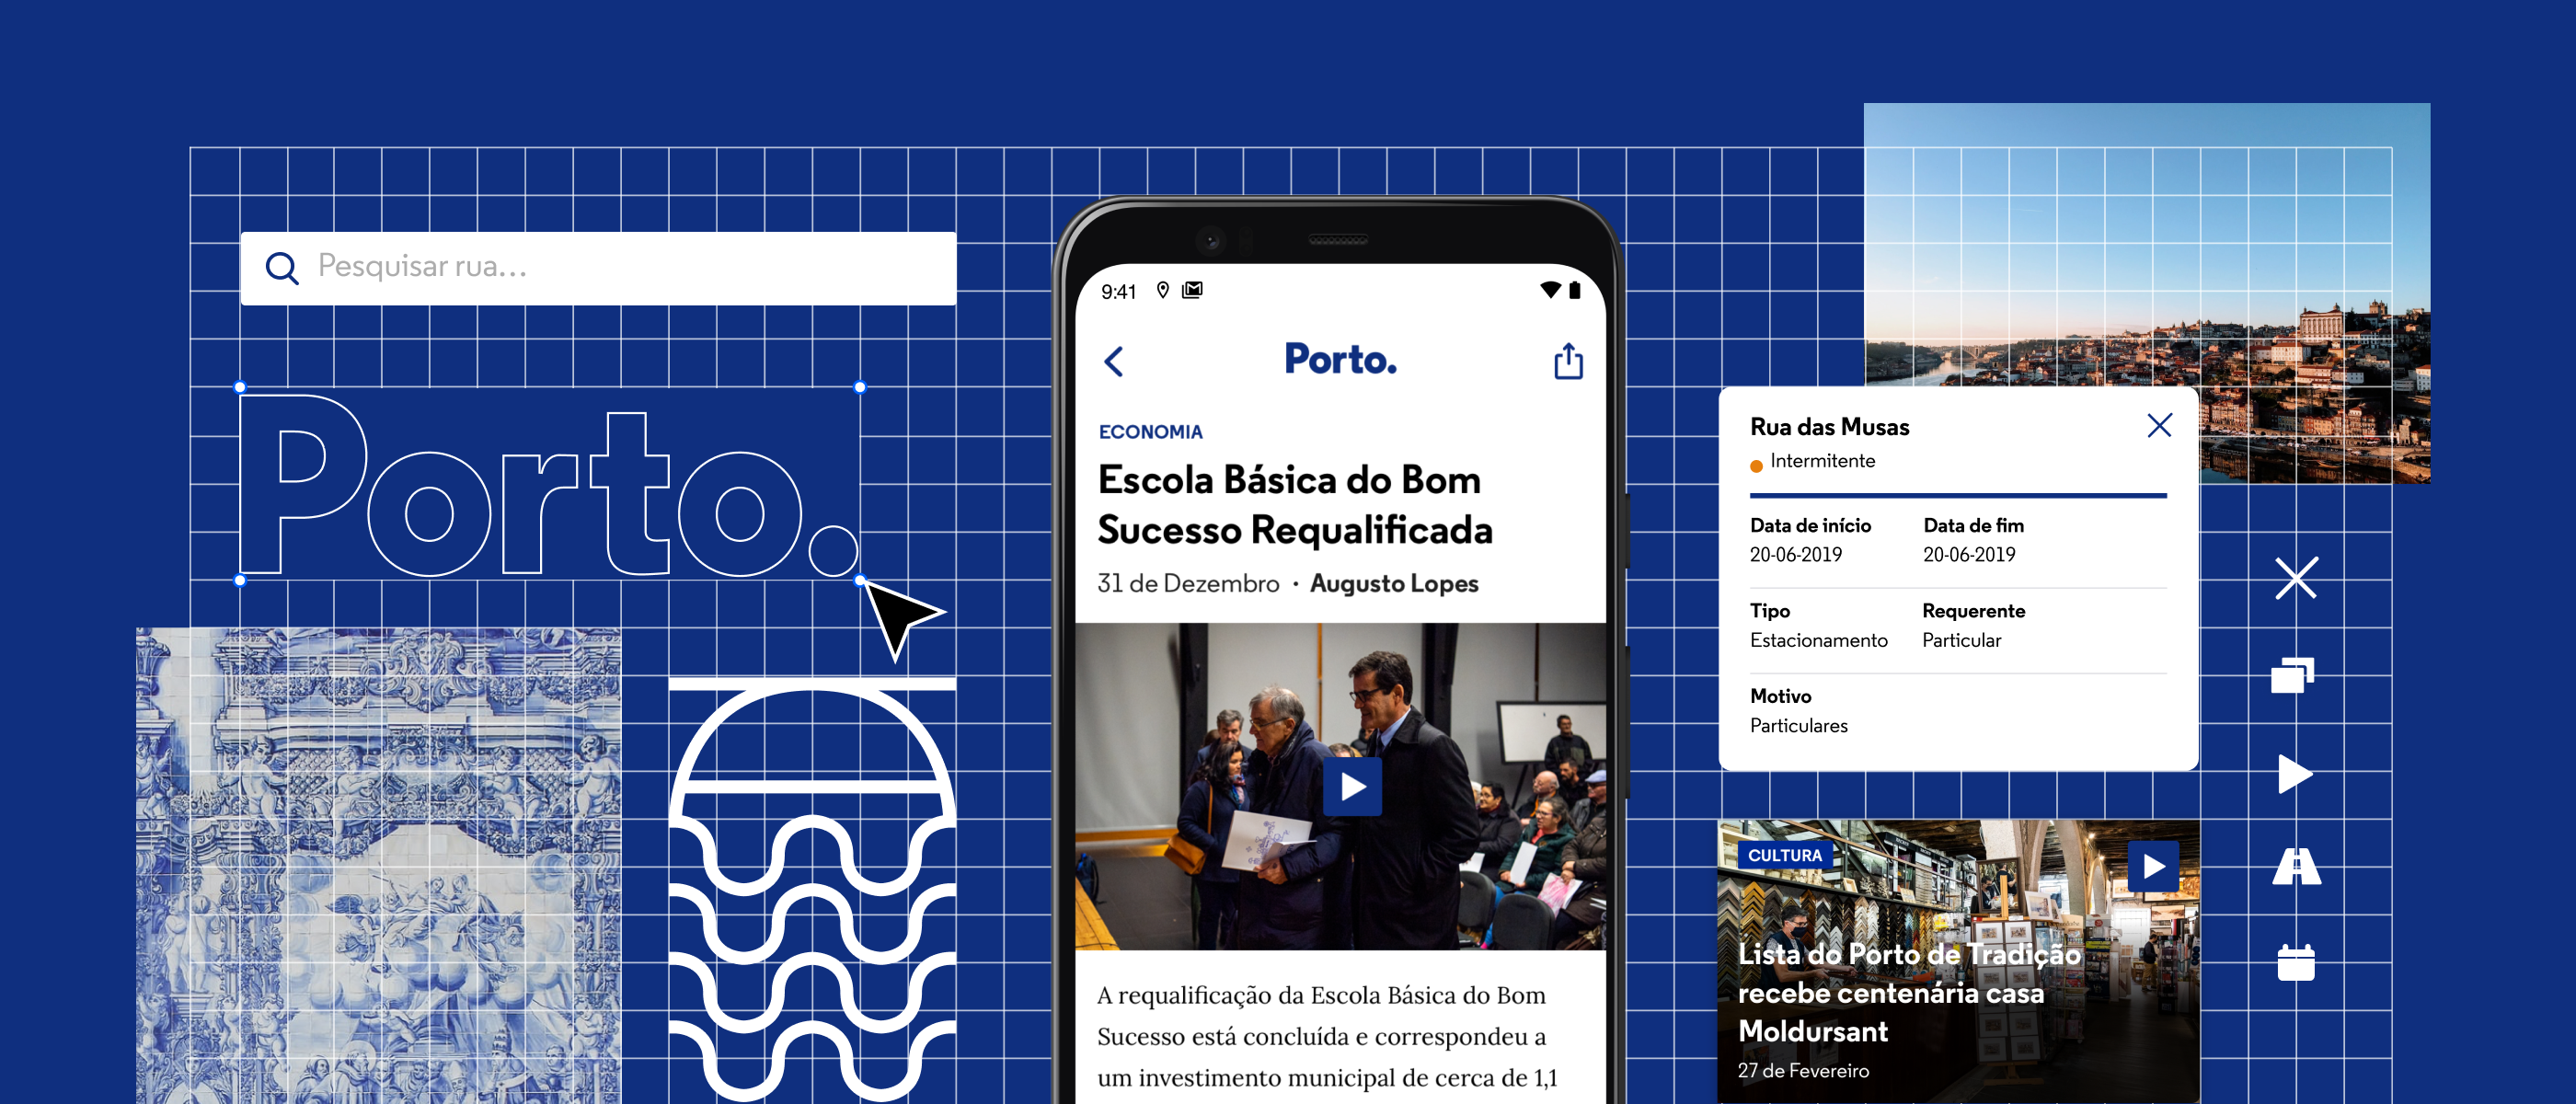 A design look into a newsworthy experience